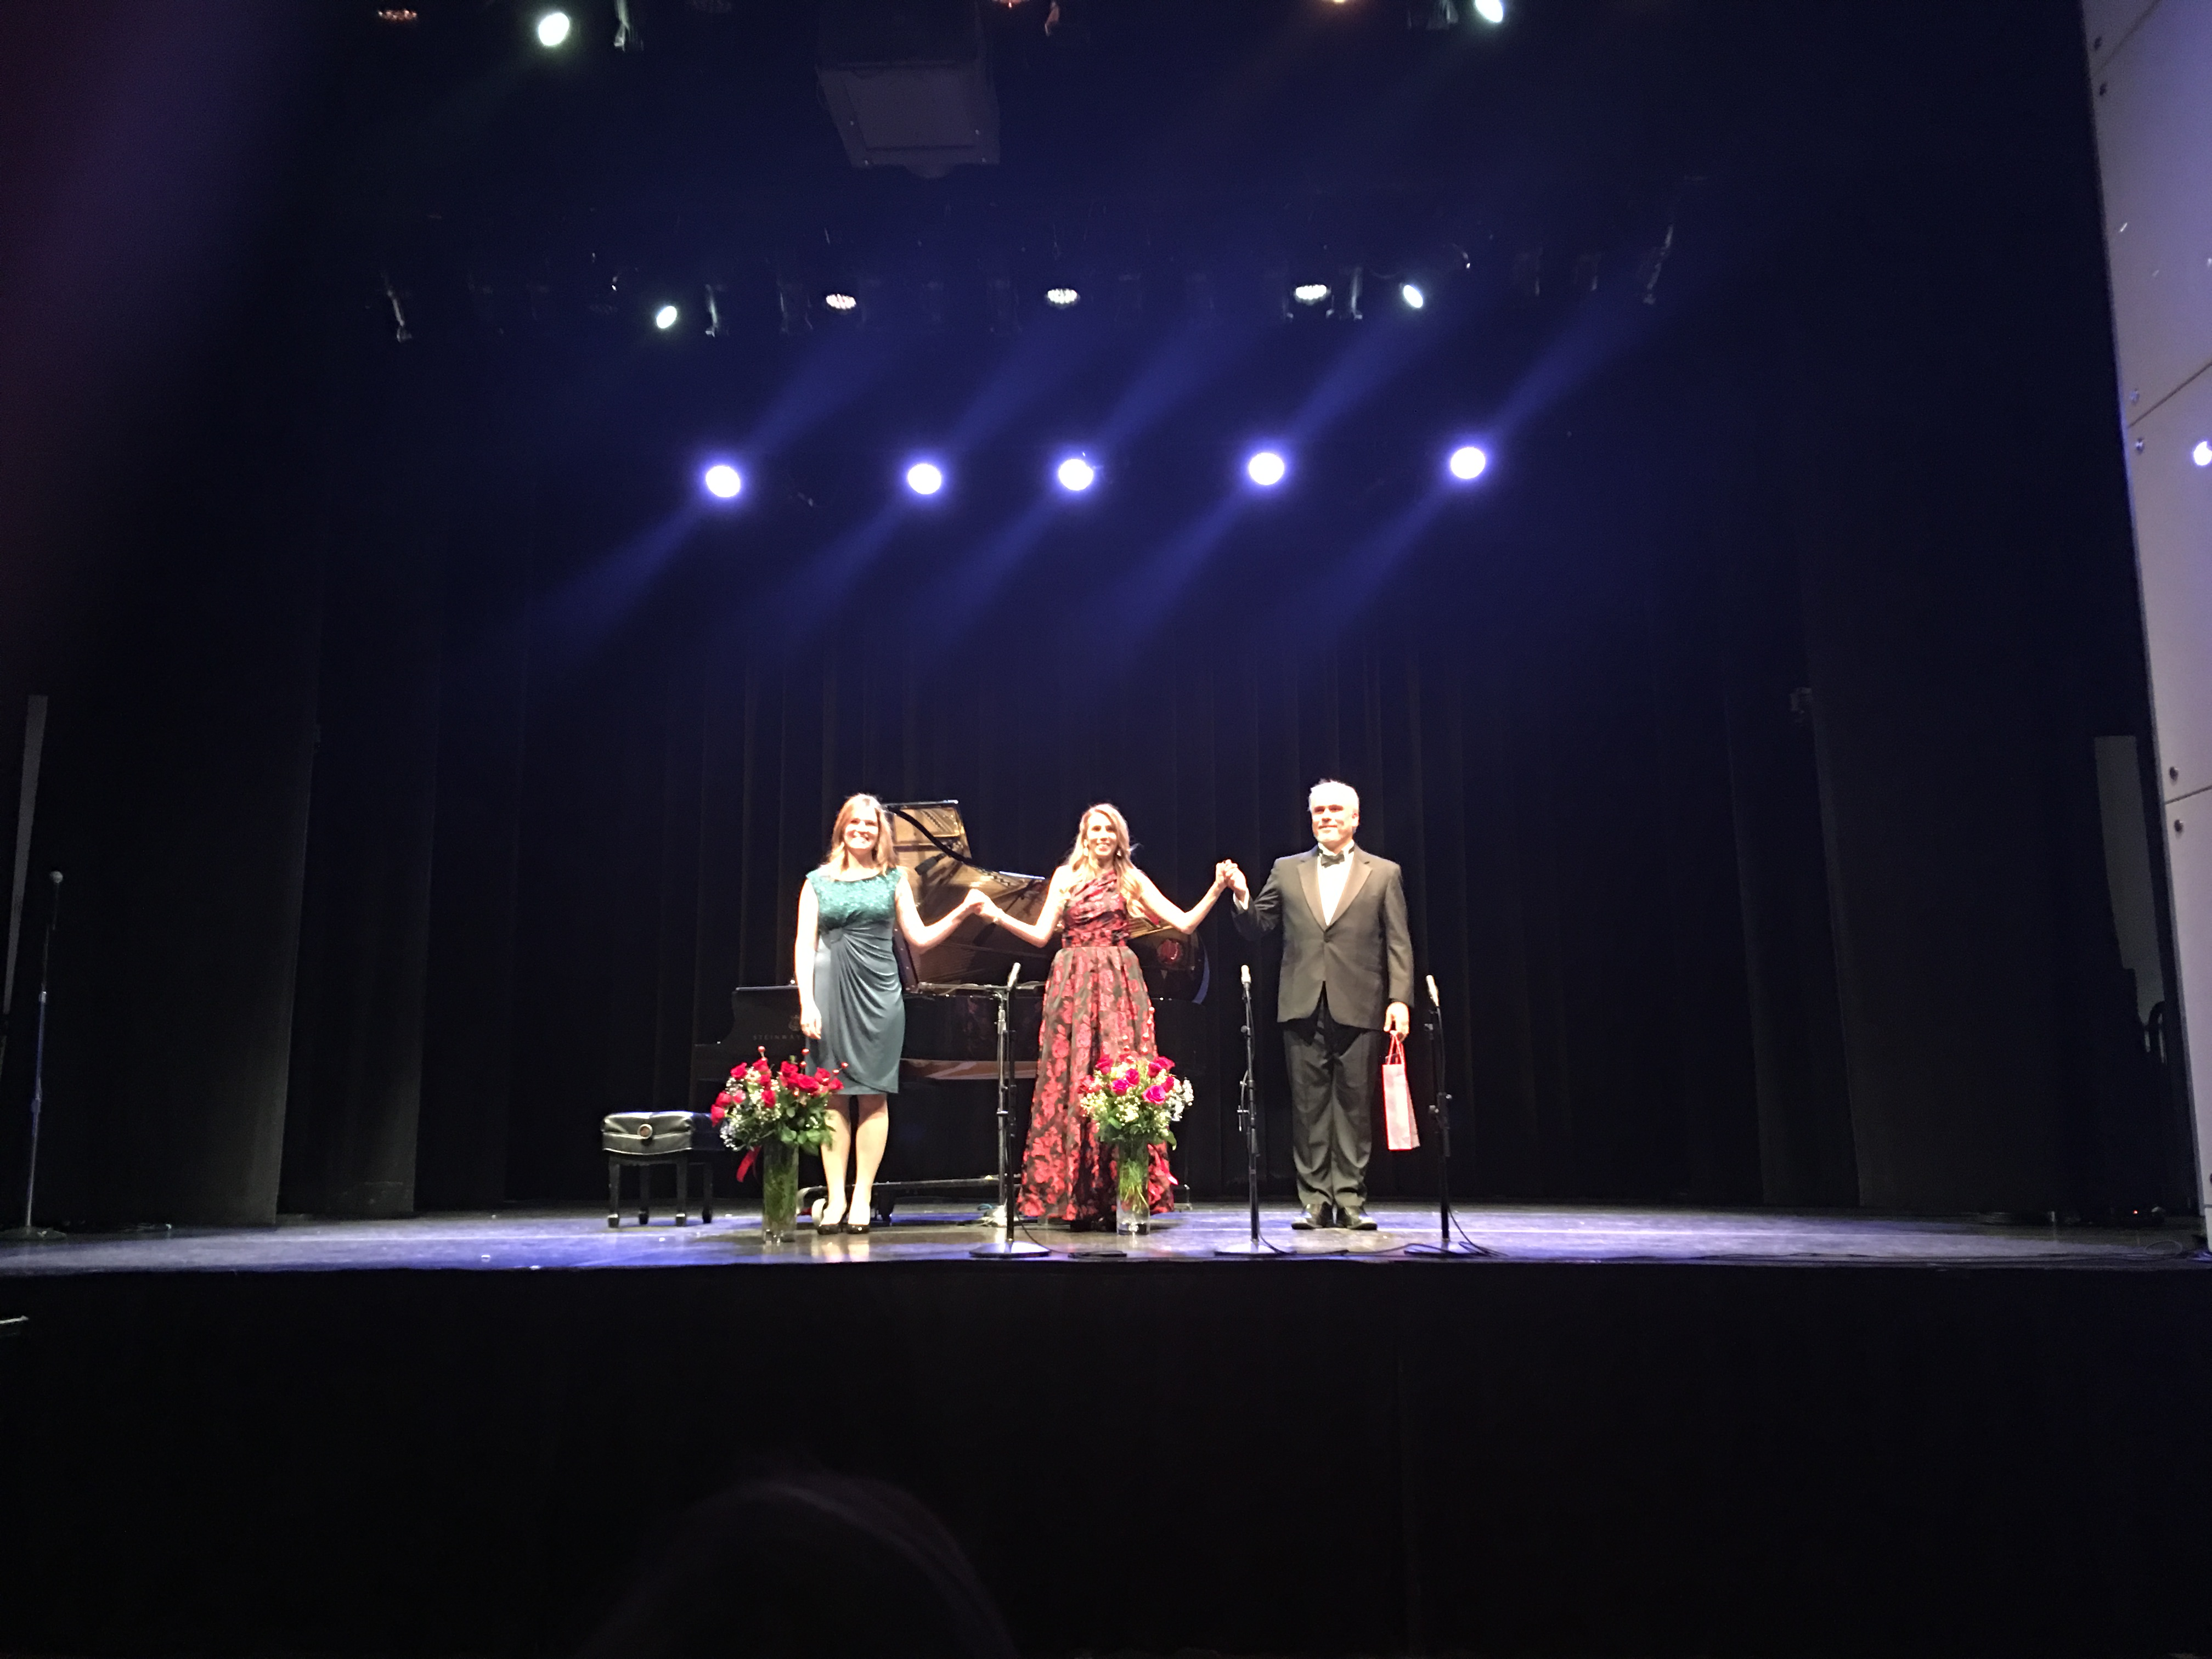 Washington D C 12th December 2017 – The Embassy of the Republic of Serbia and The John F Kennedy Center for the Performing Arts organized a concert of